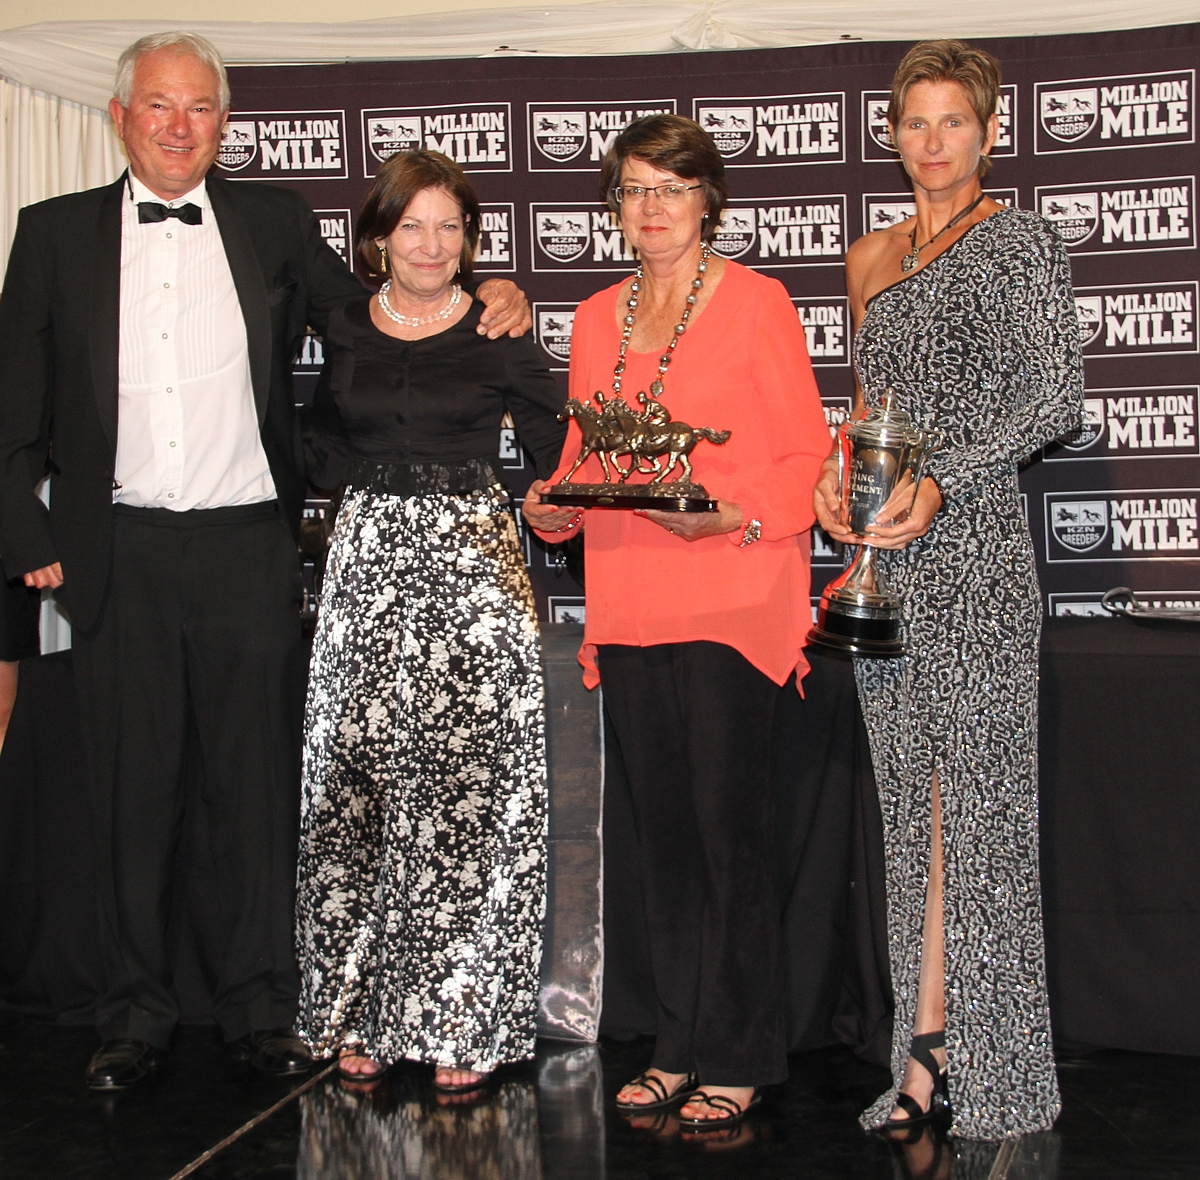 Clifton Stud at the 2015 KZN Breeders Awards, where they won Breeders Achievement. Peter Blyth, Linda Norval, Jenny Blyth and Christine Quinn pictured. Image: Candiese Marnewick